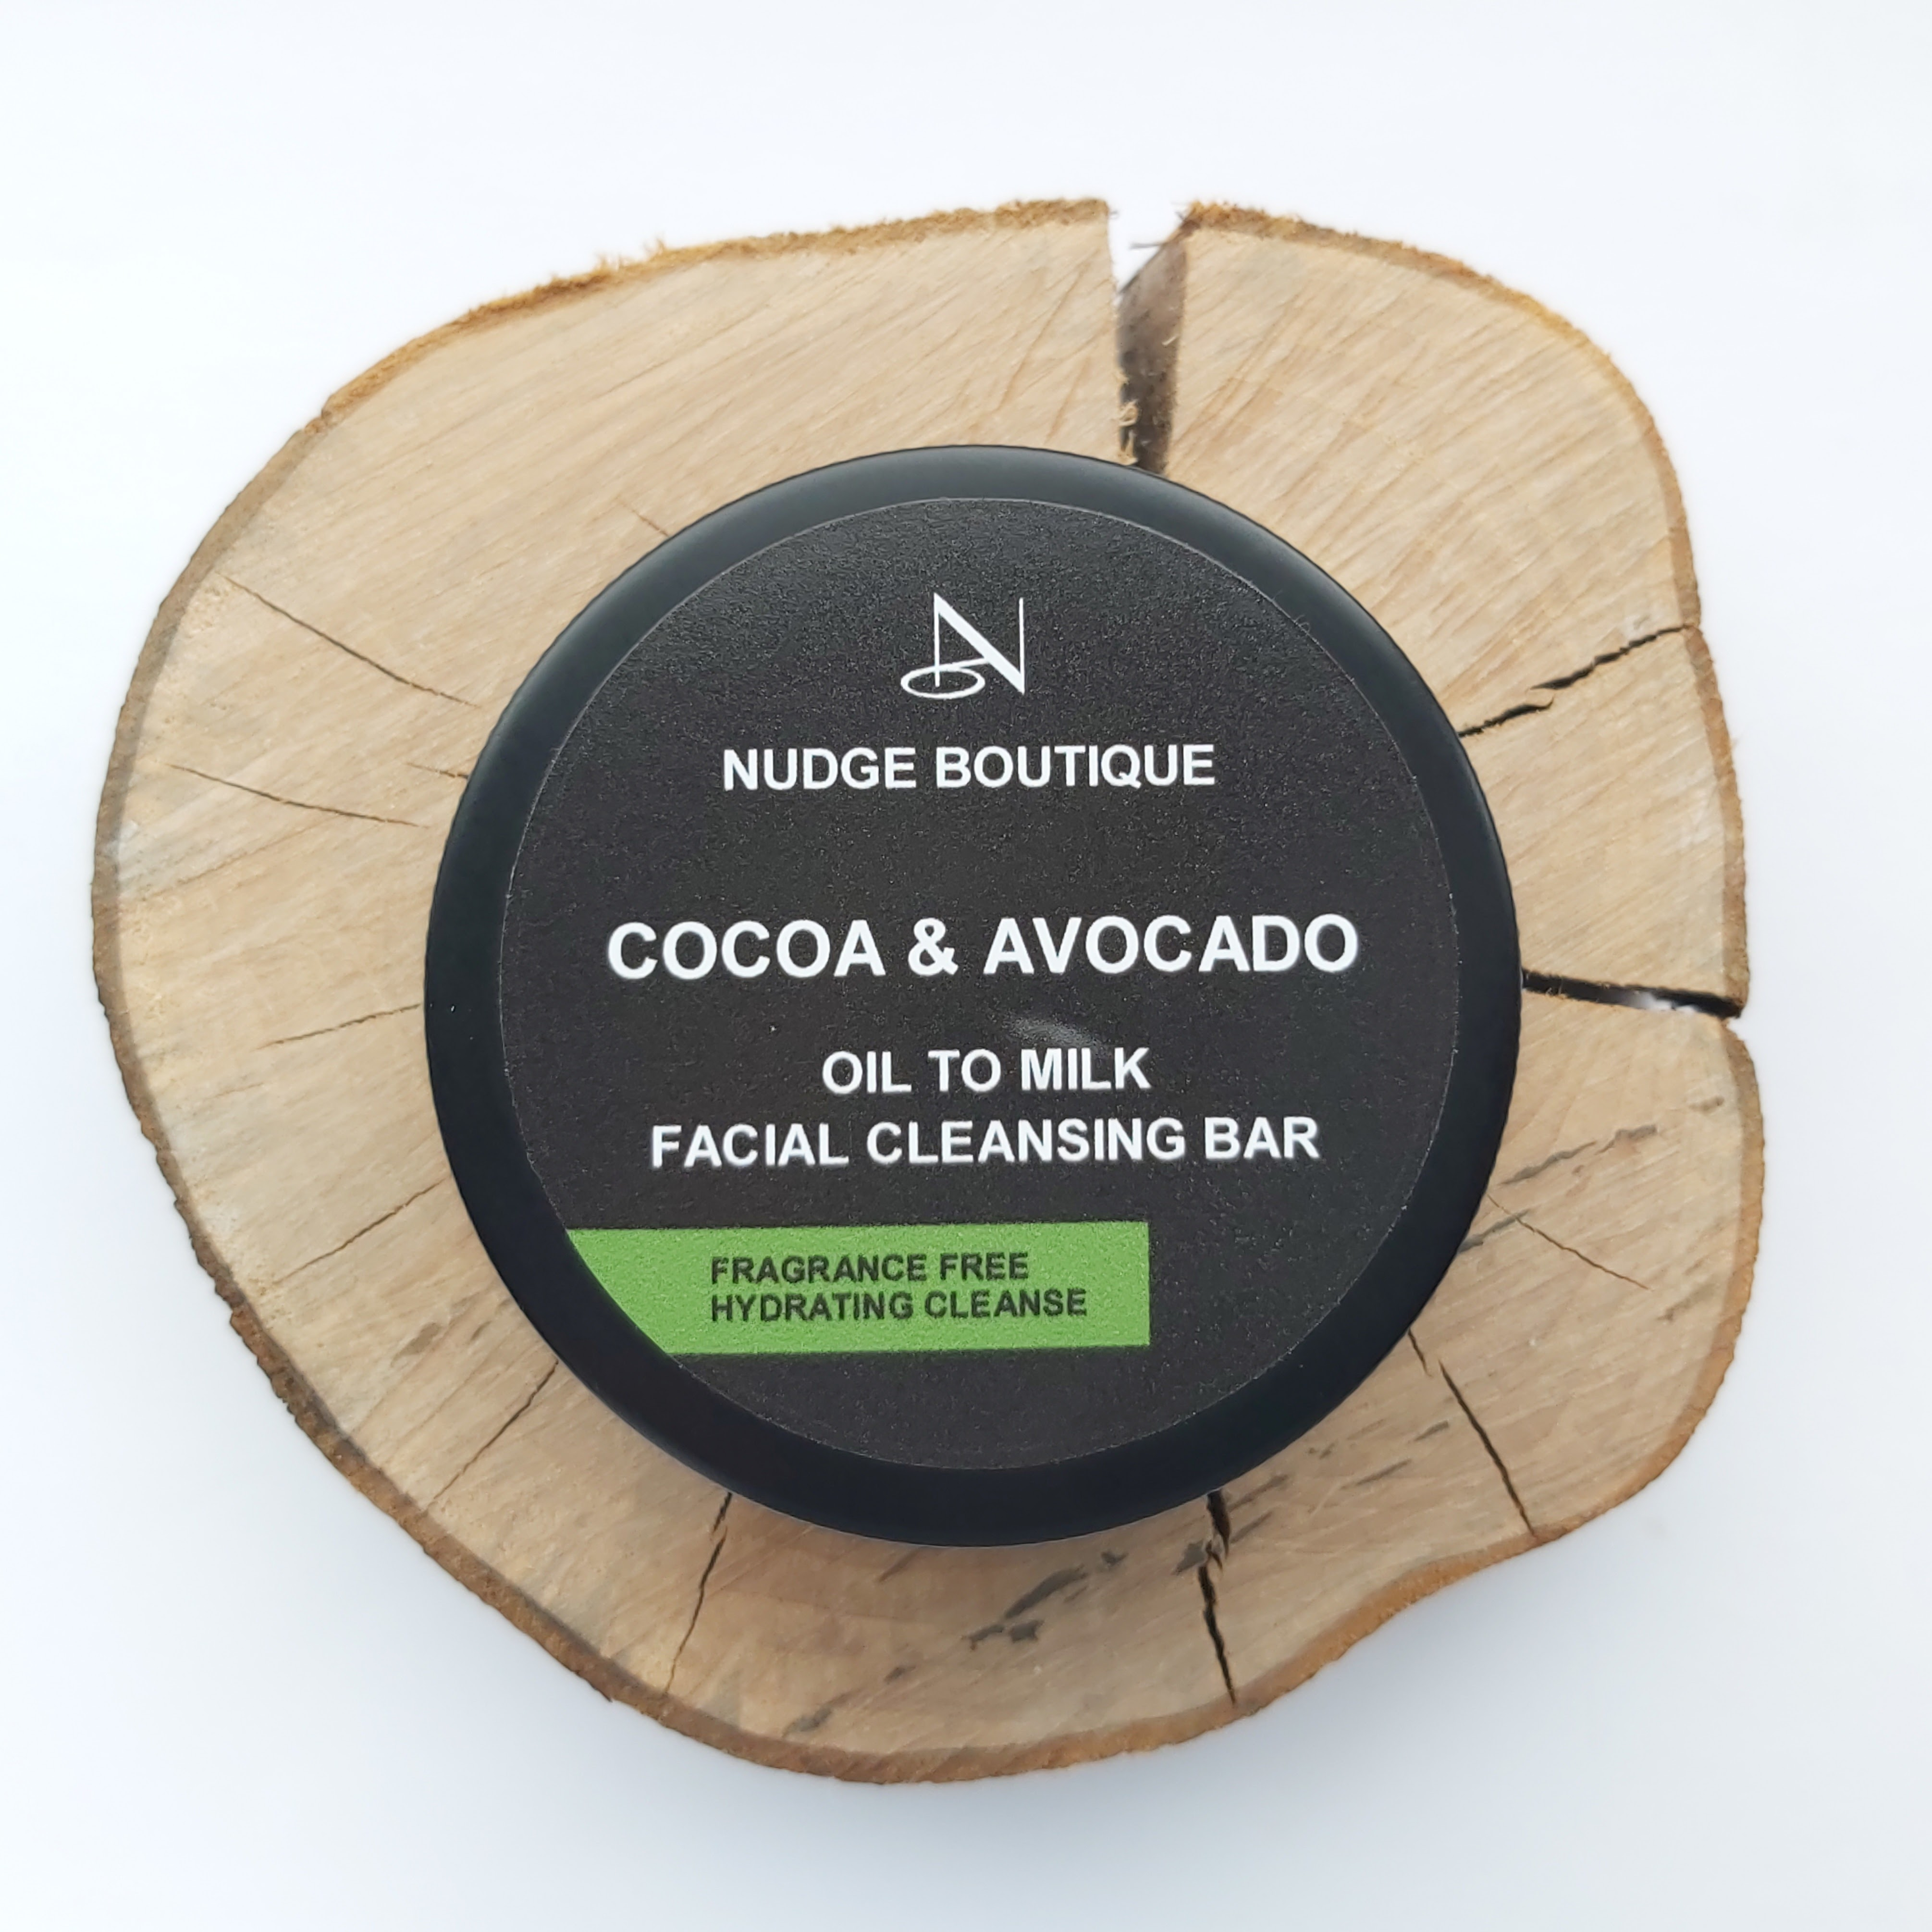 Nudge Boutique Cocoa & Avocado Oil to Milk Cleansing Bar in a black aluminium tin on a wooden slice and white background - Review by Beauty Folio